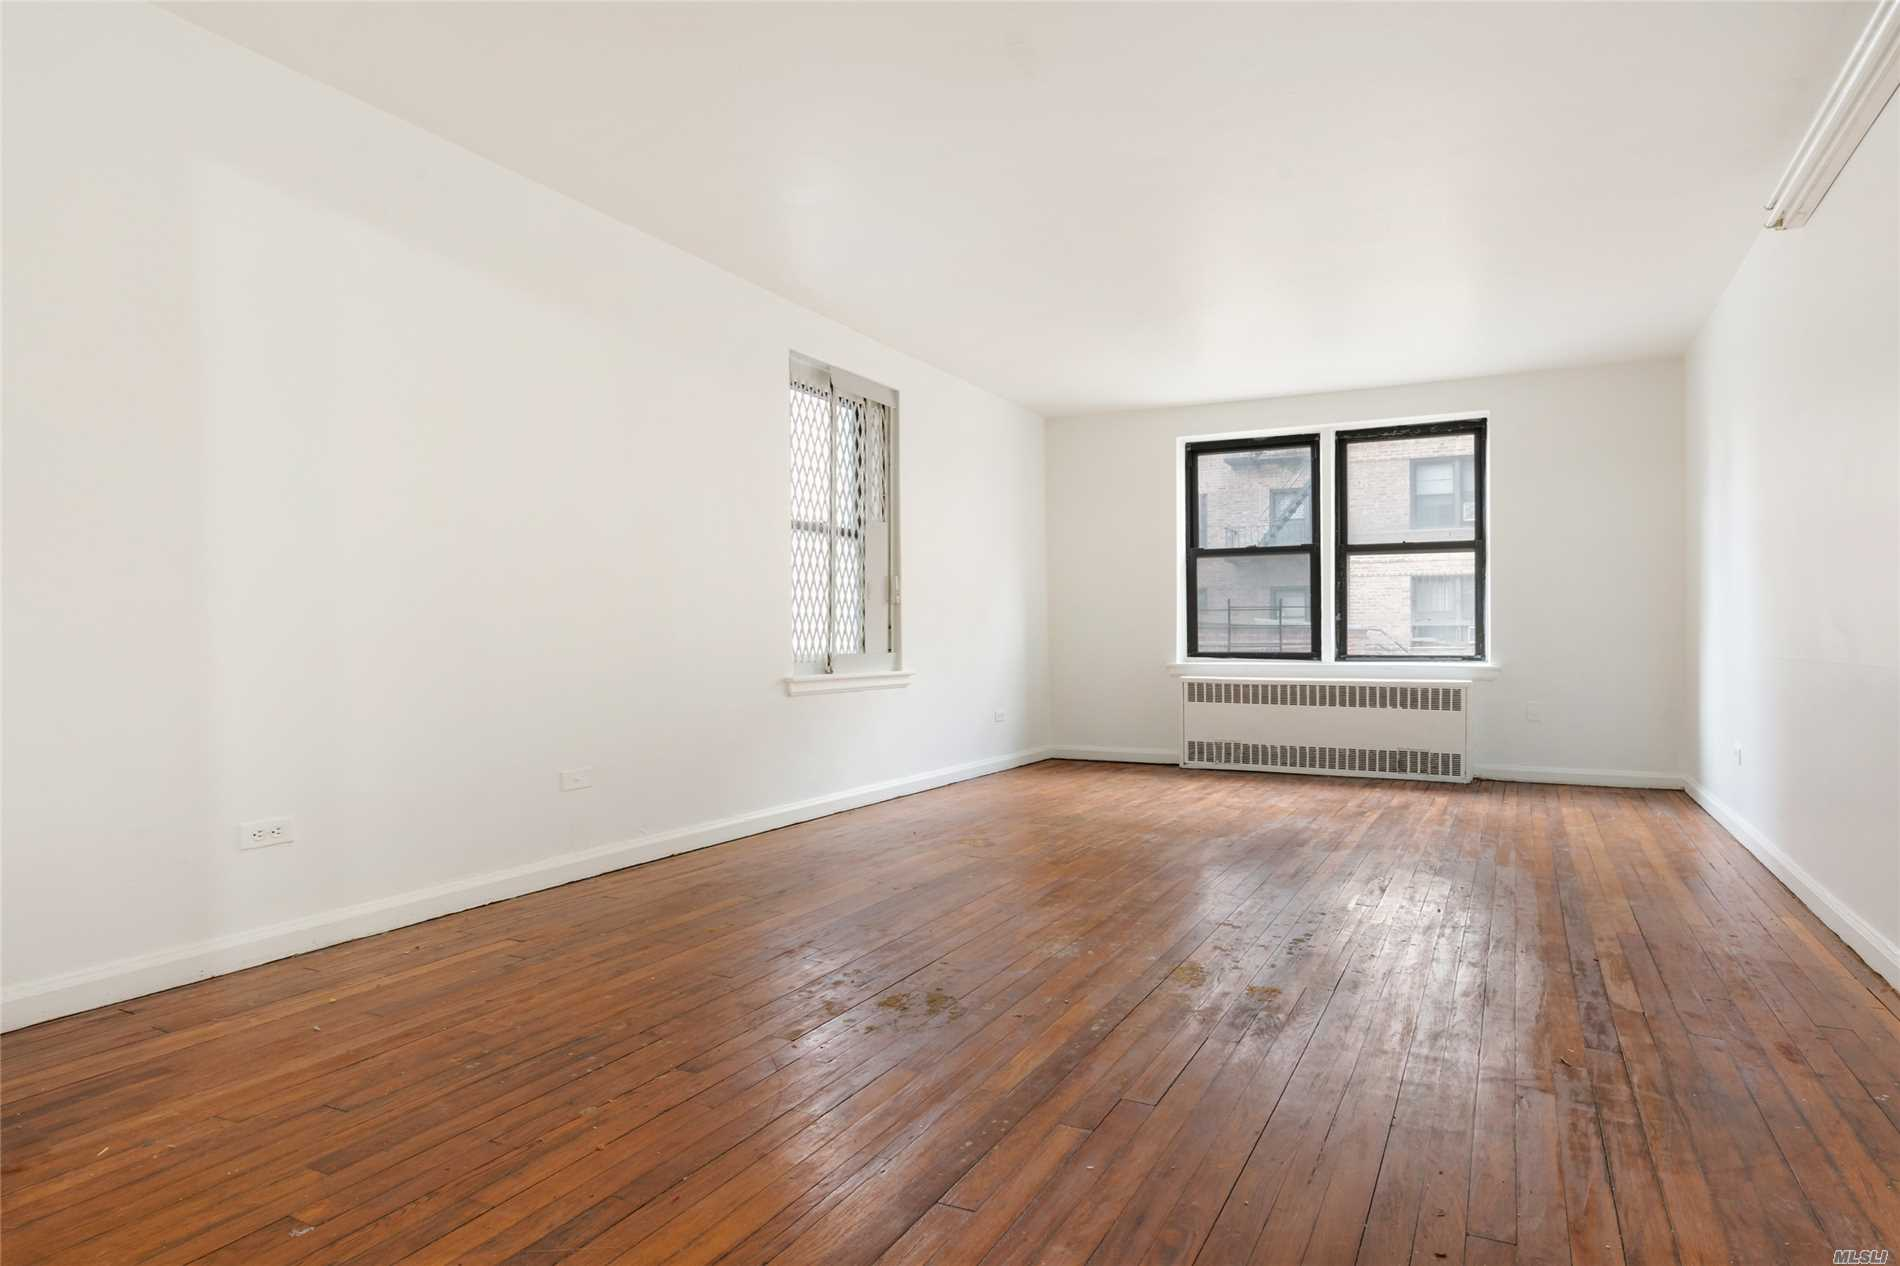 Be In The Heart Of Flushing. Large Bedrooms, Spacious Living Room, Plenty Of Closets, New Appliances. Laundry Facilities In Complex. Maintenance Includes All Utilities. Convenient To Supermarket, Shopping, Places Of Worship, Subways, Express Buses To Manhattan And Lirr.